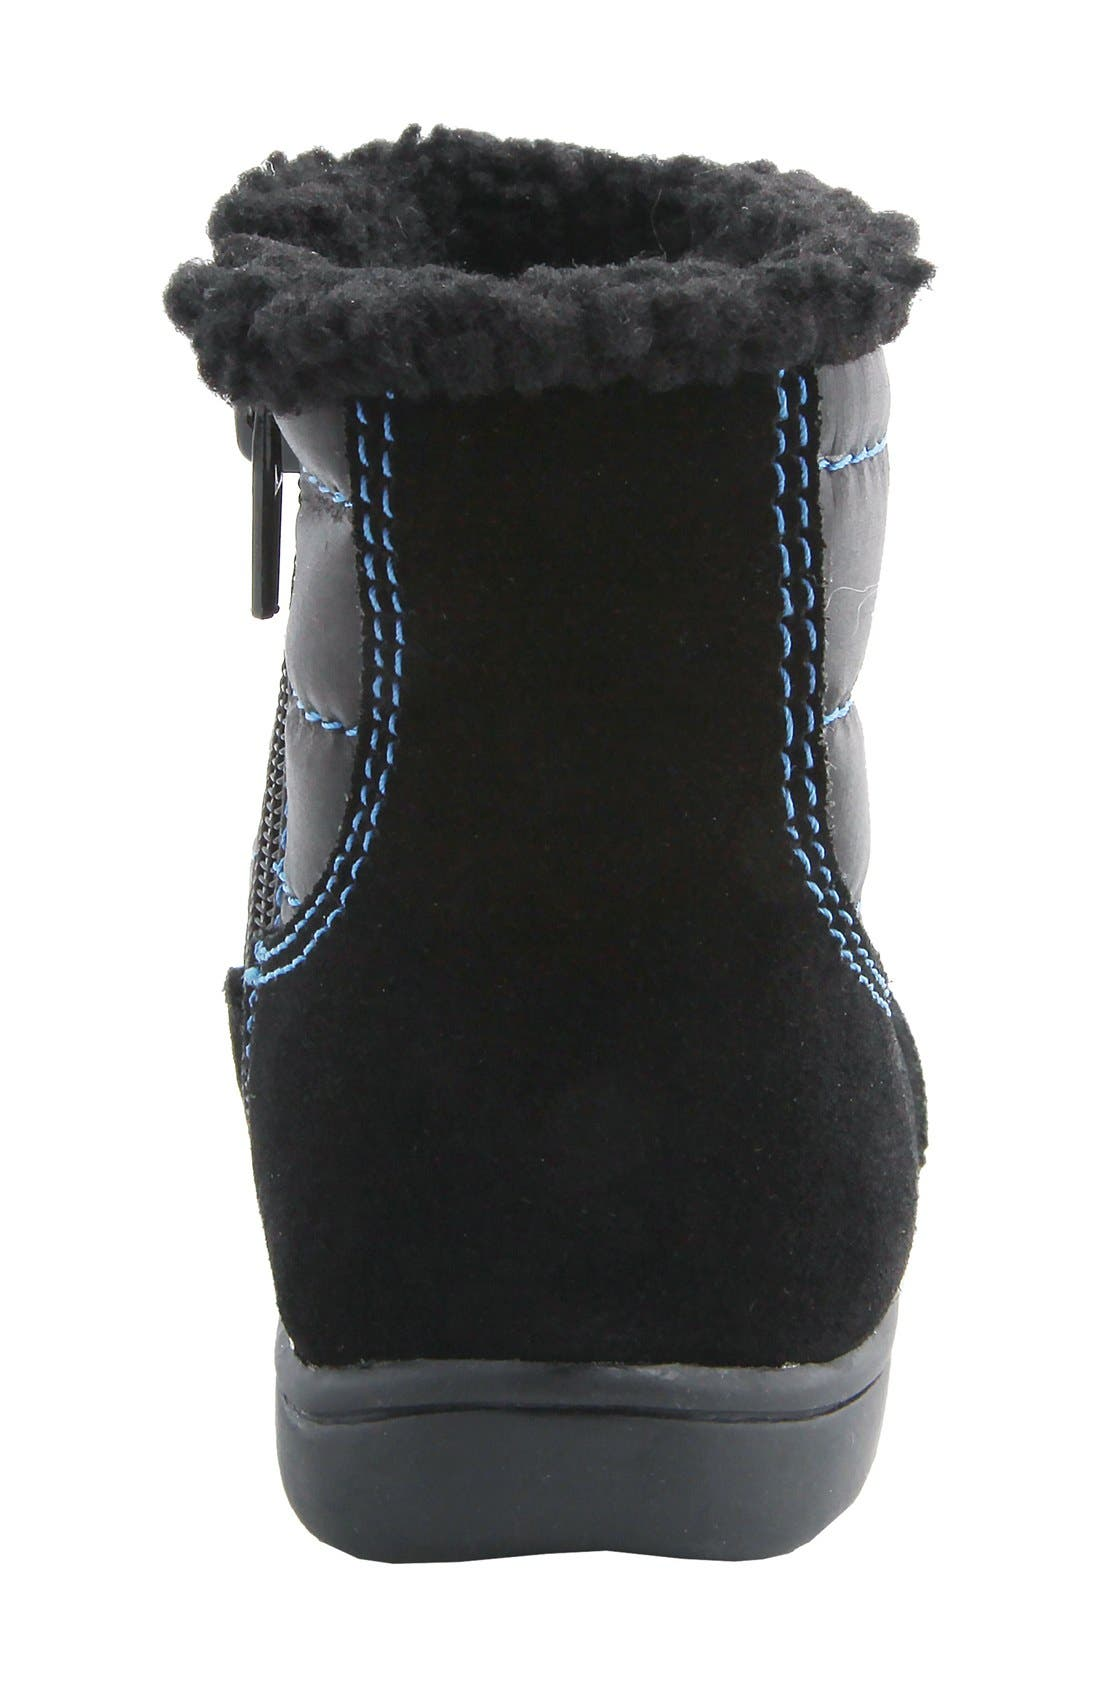 MOBILITY, Nina 'Yolie' Lace-Up Boot, Alternate thumbnail 4, color, BLACK